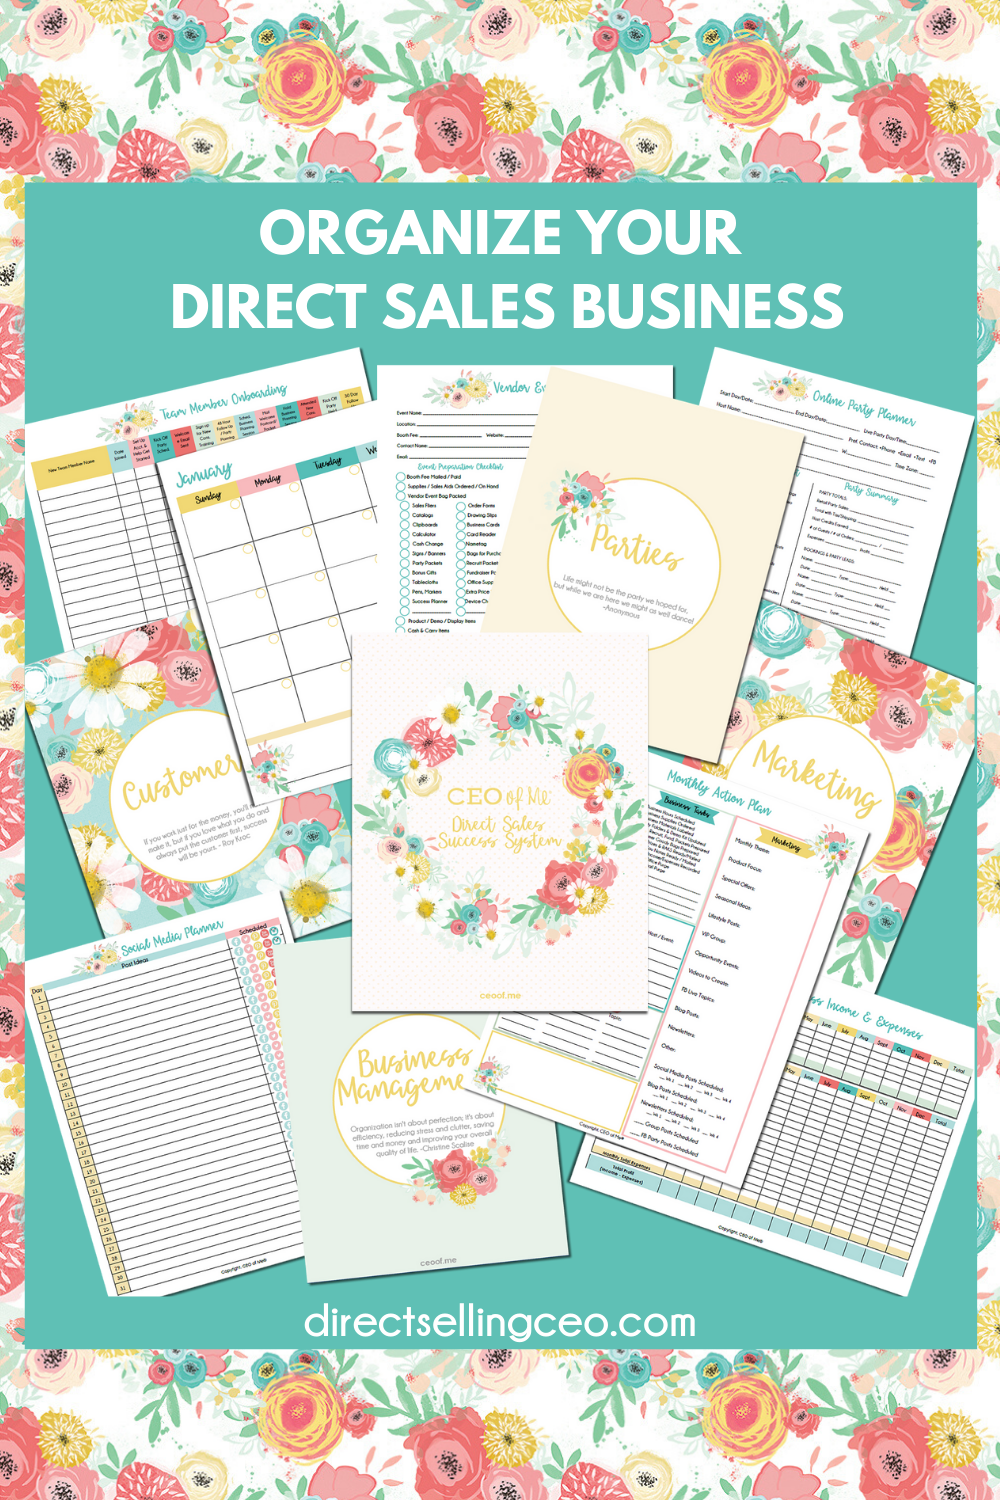 Learn How To Organize Systemize Optimize Your Direct Sales